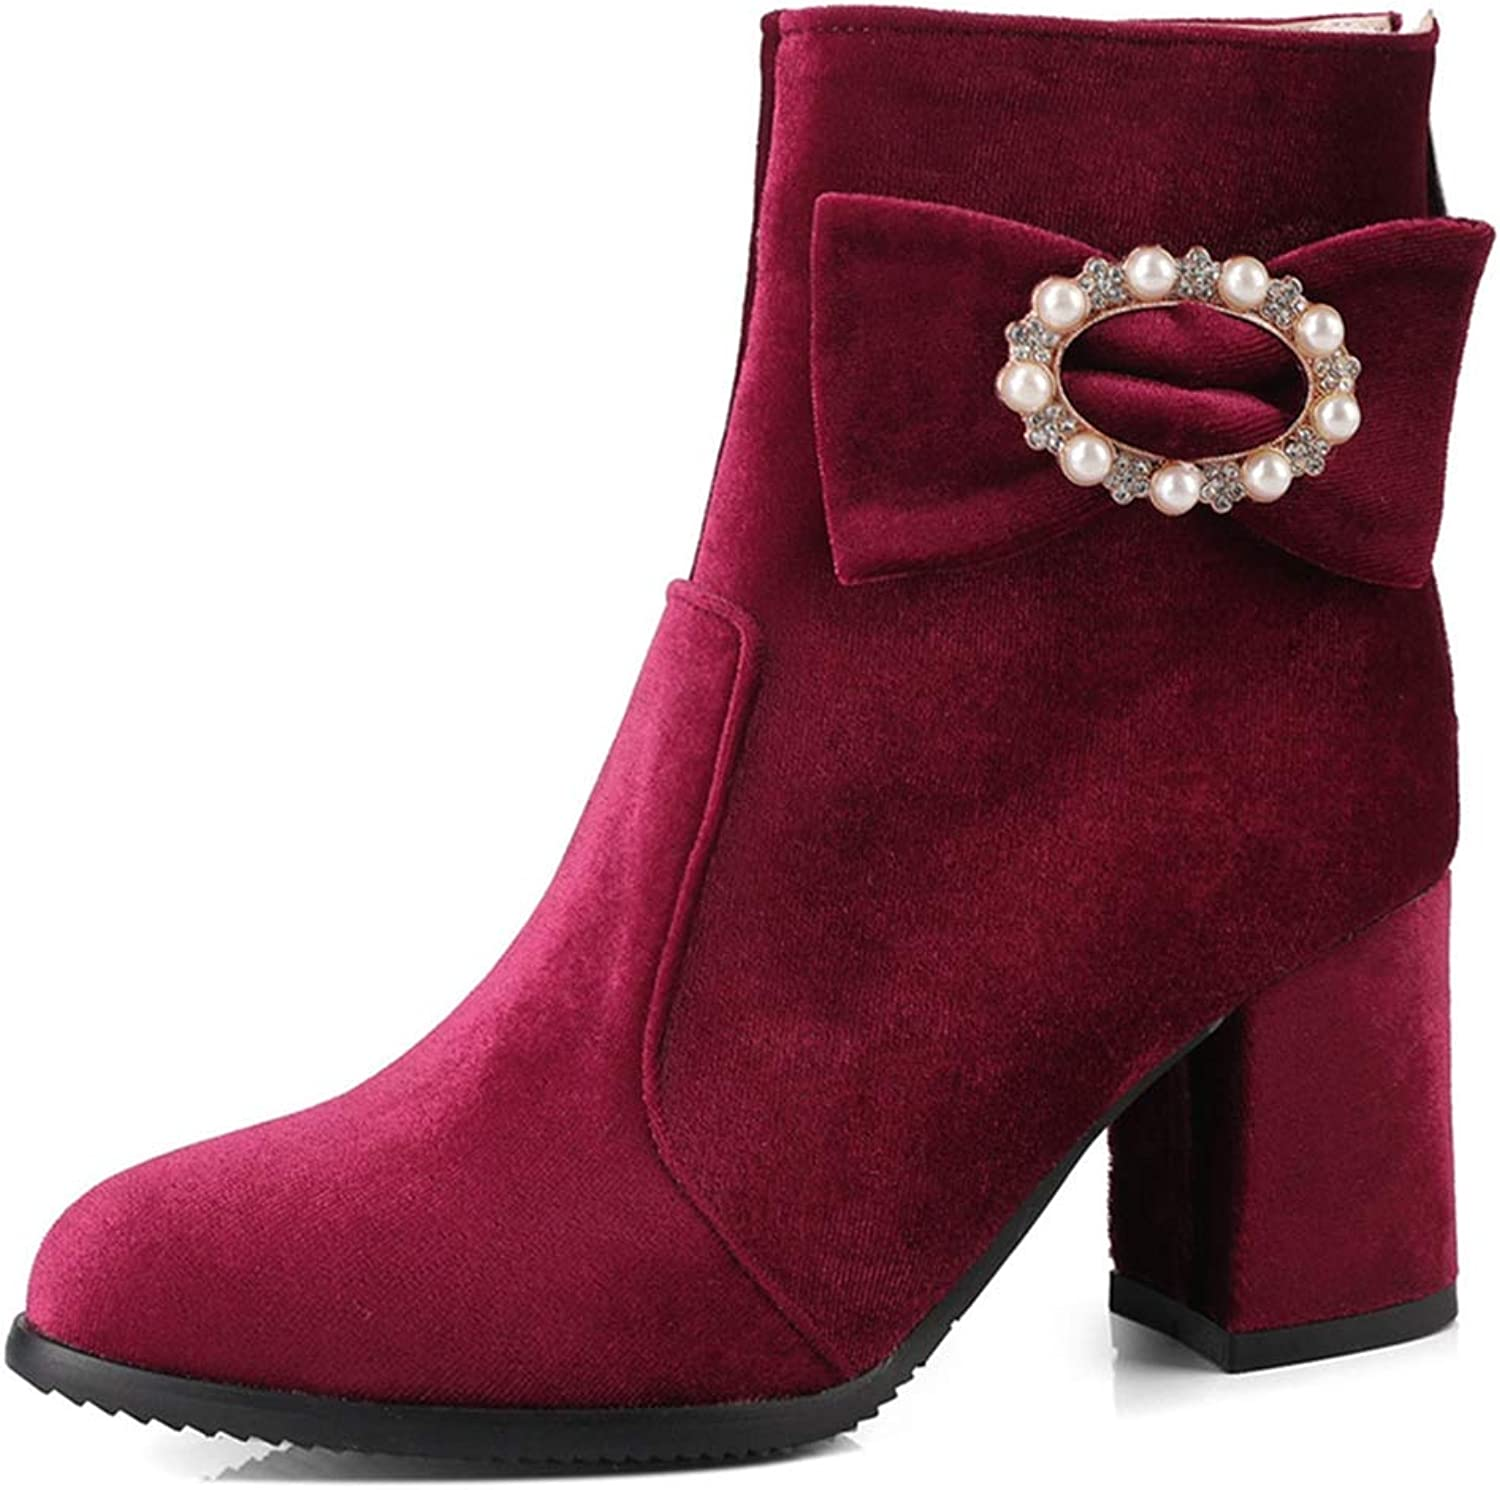 GIY Women's Retro Dressy Chunky Heel Ankle Boots Round Toe Velvet Lined Zipper Bootie Studded Short Boots